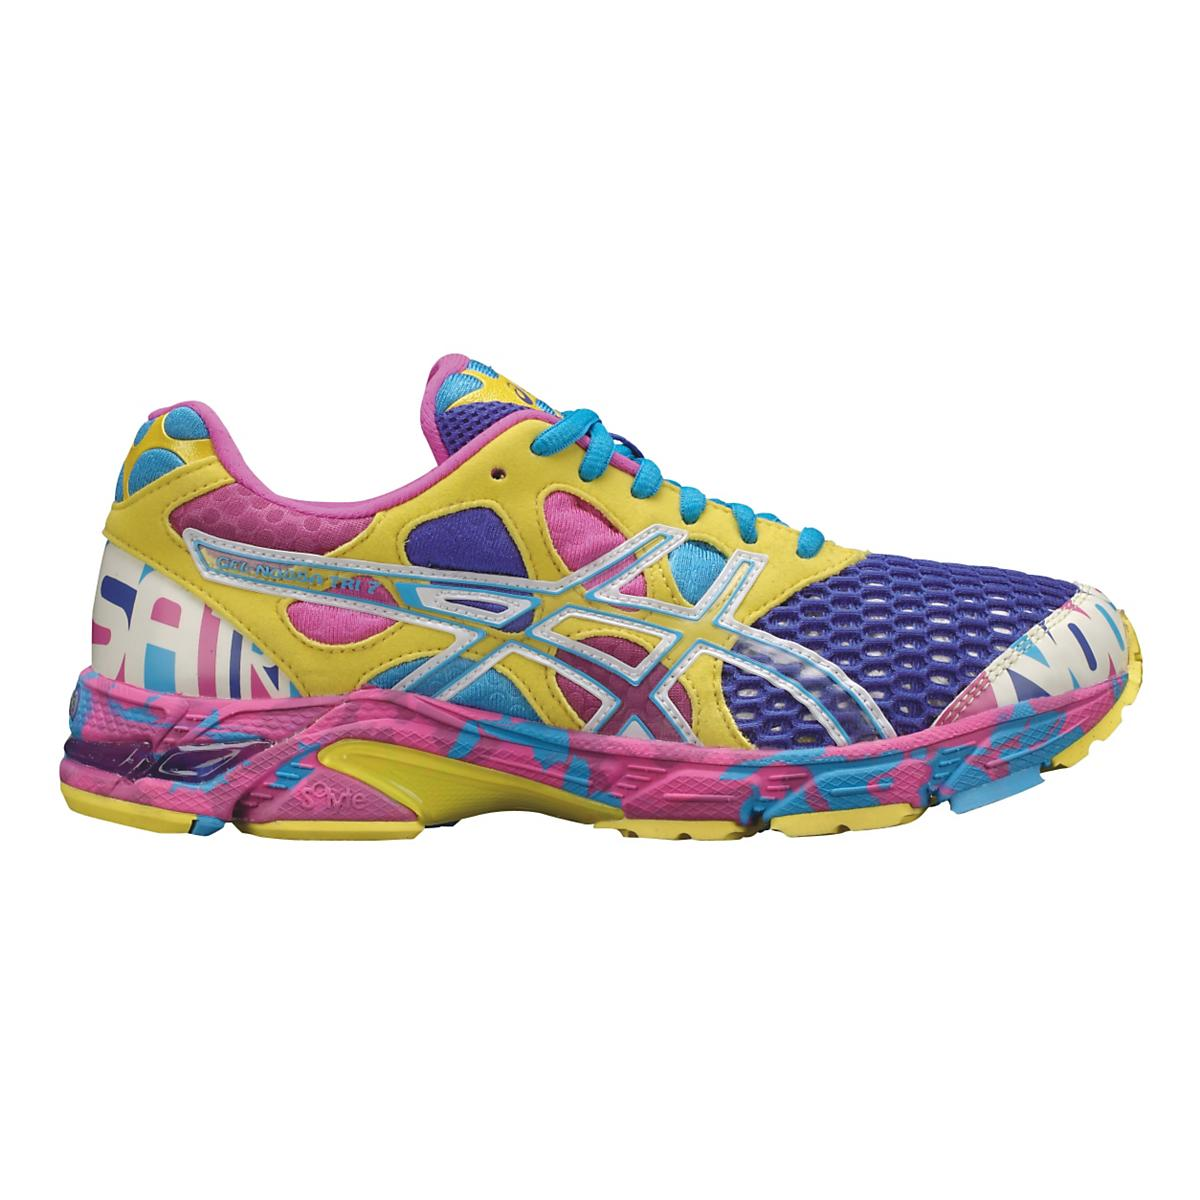 Womens ASICS GEL-Noosa Tri 7 Running Shoe at Road Runner Spo